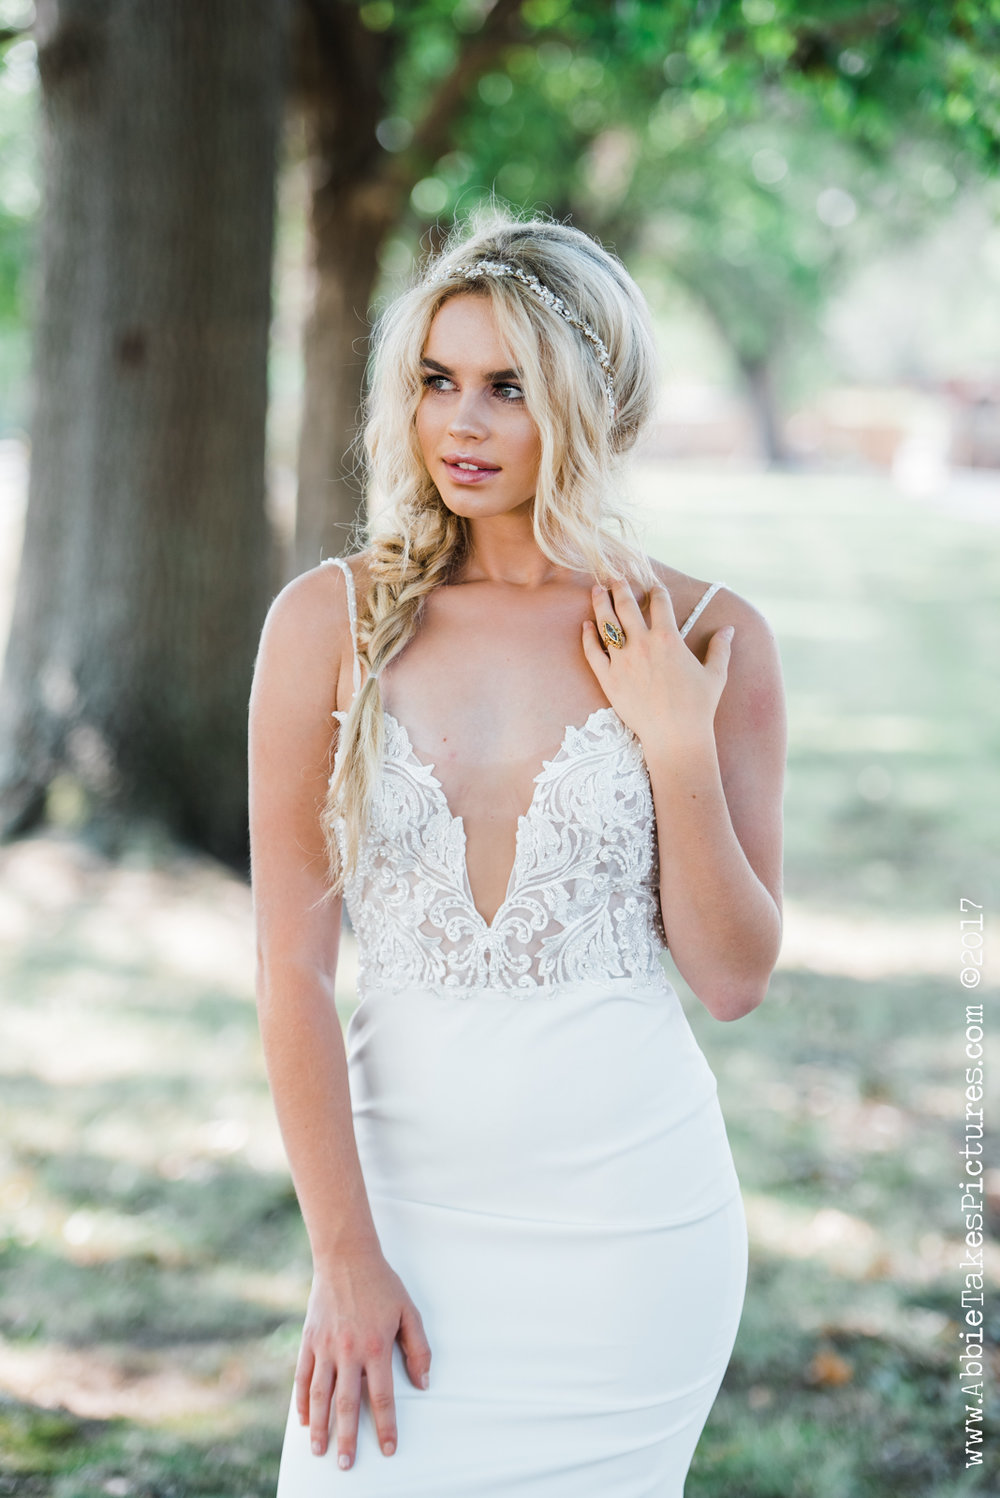 Saint Louis Bride Magazine : Abbie Takes Pictures  Made With Love Bridal